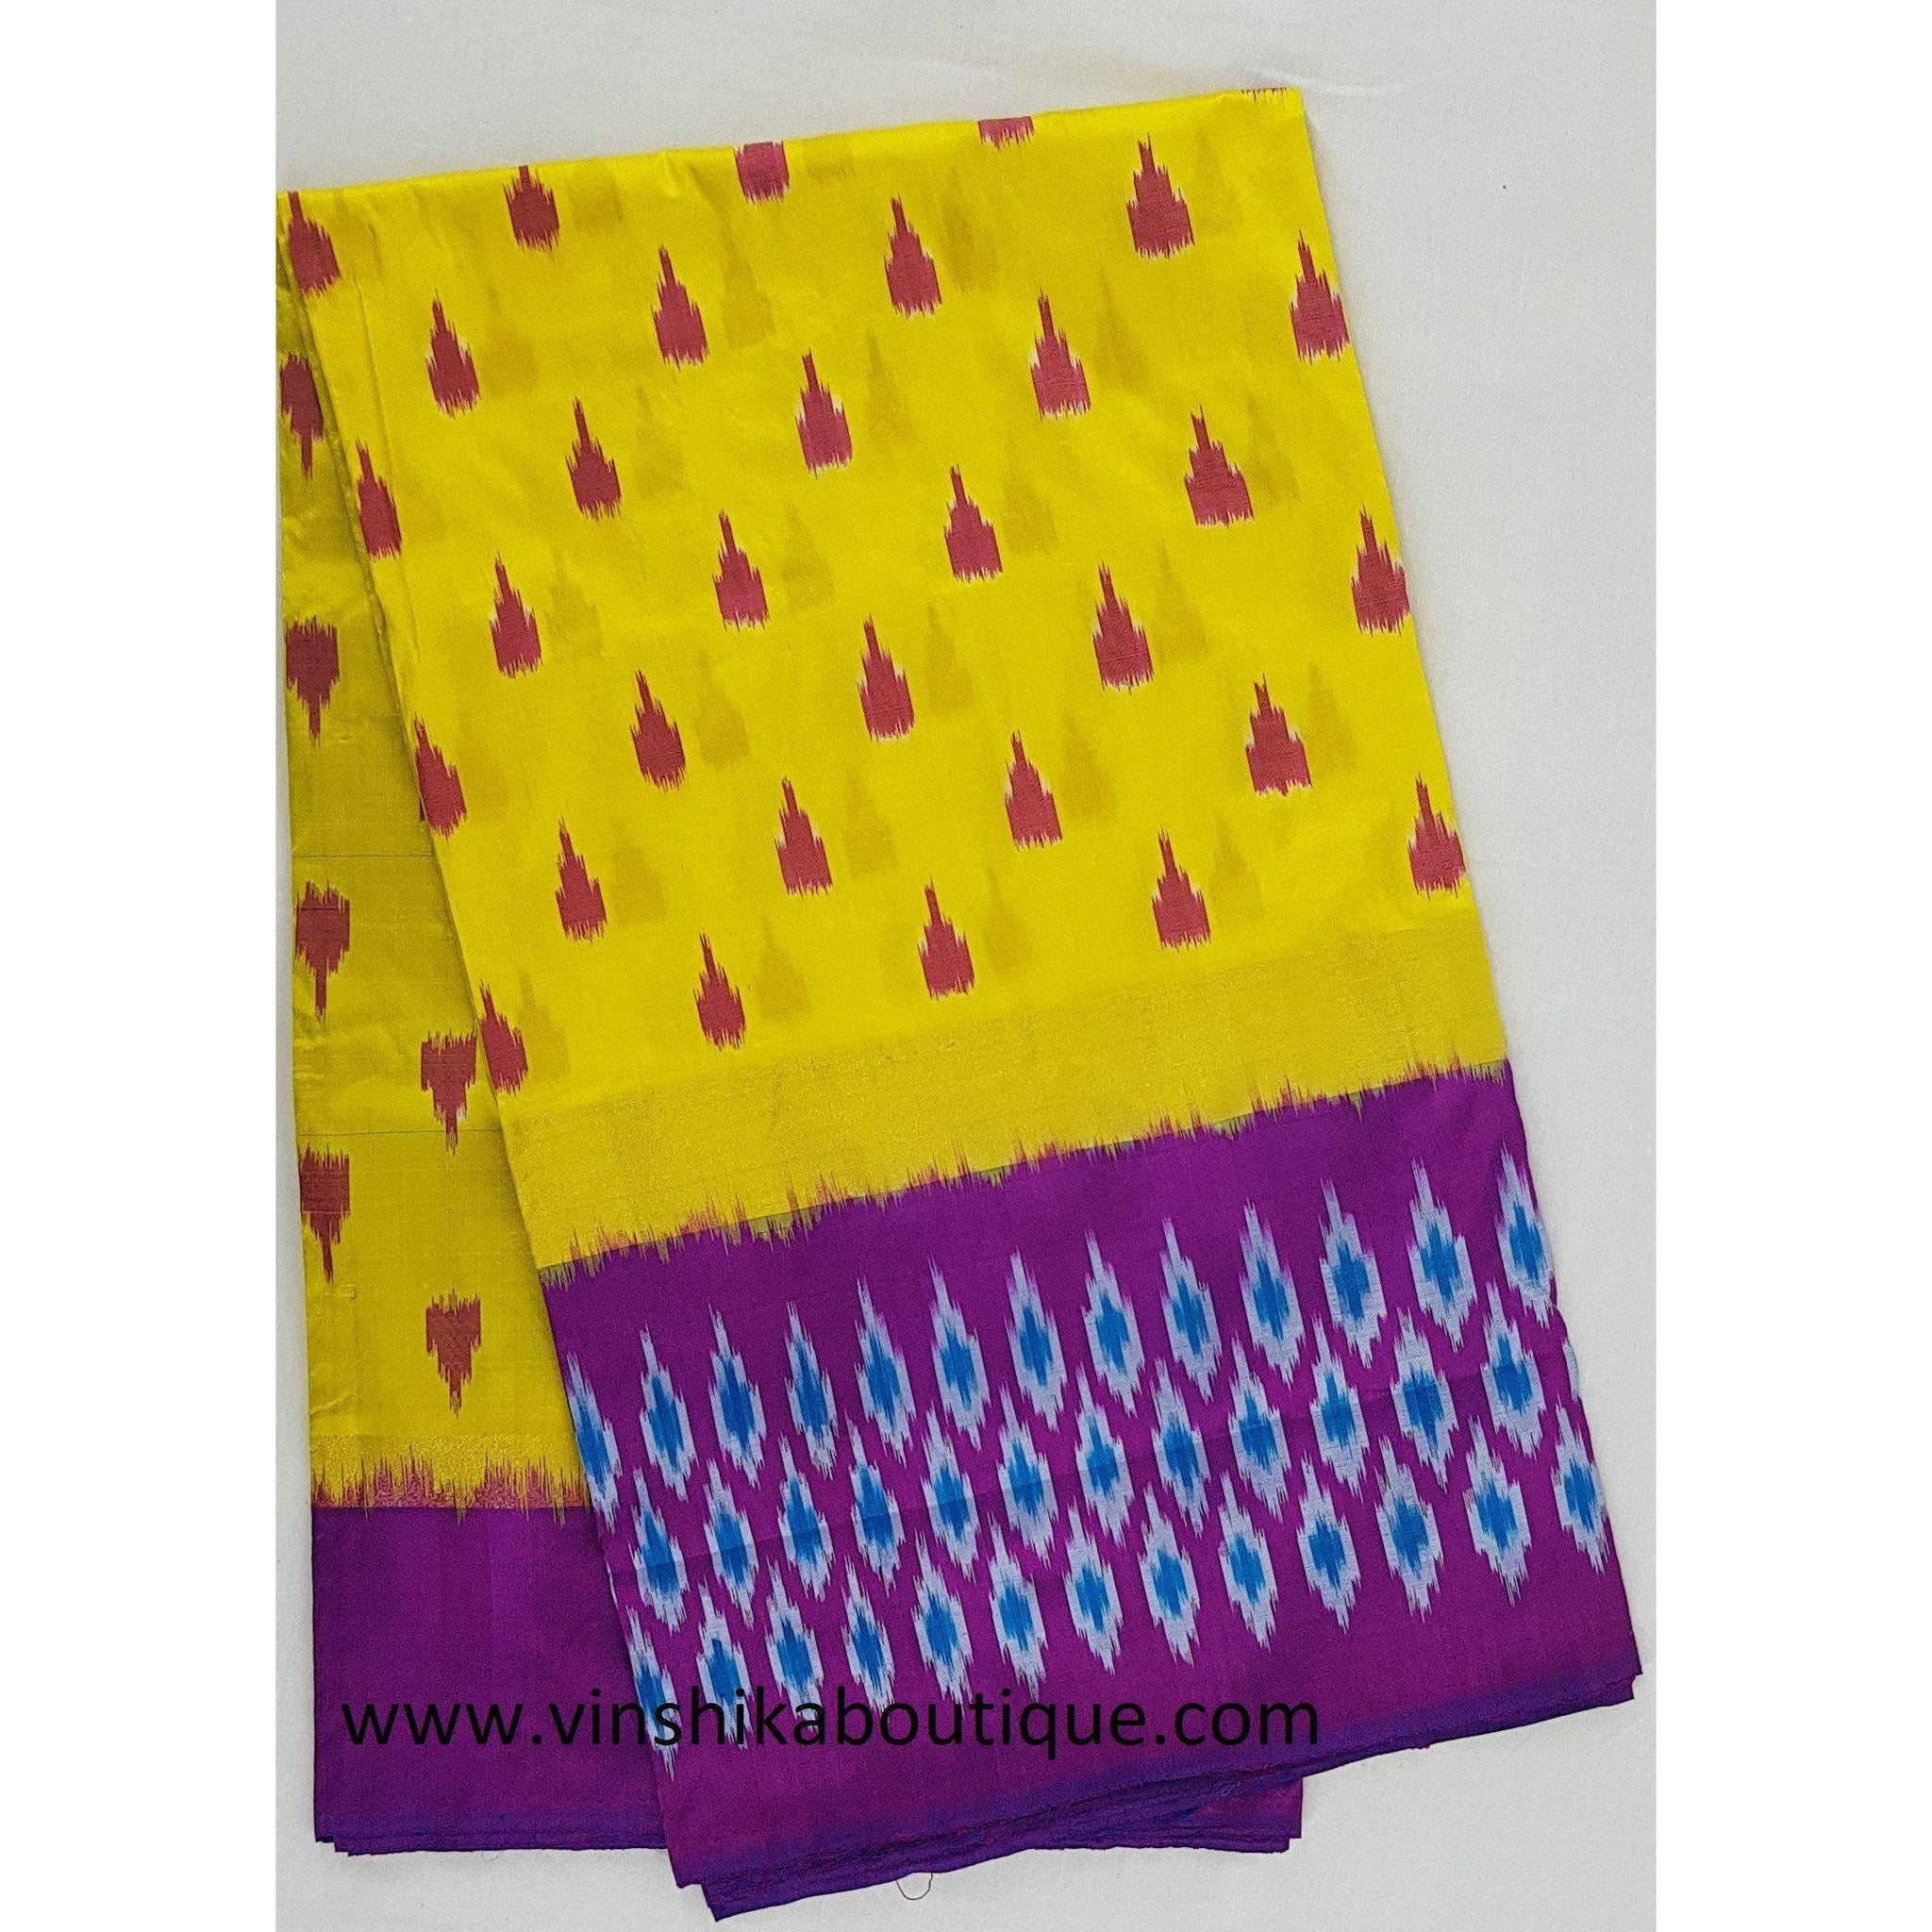 Ikat yellow and purple color handwoven silk saree - Vinshika